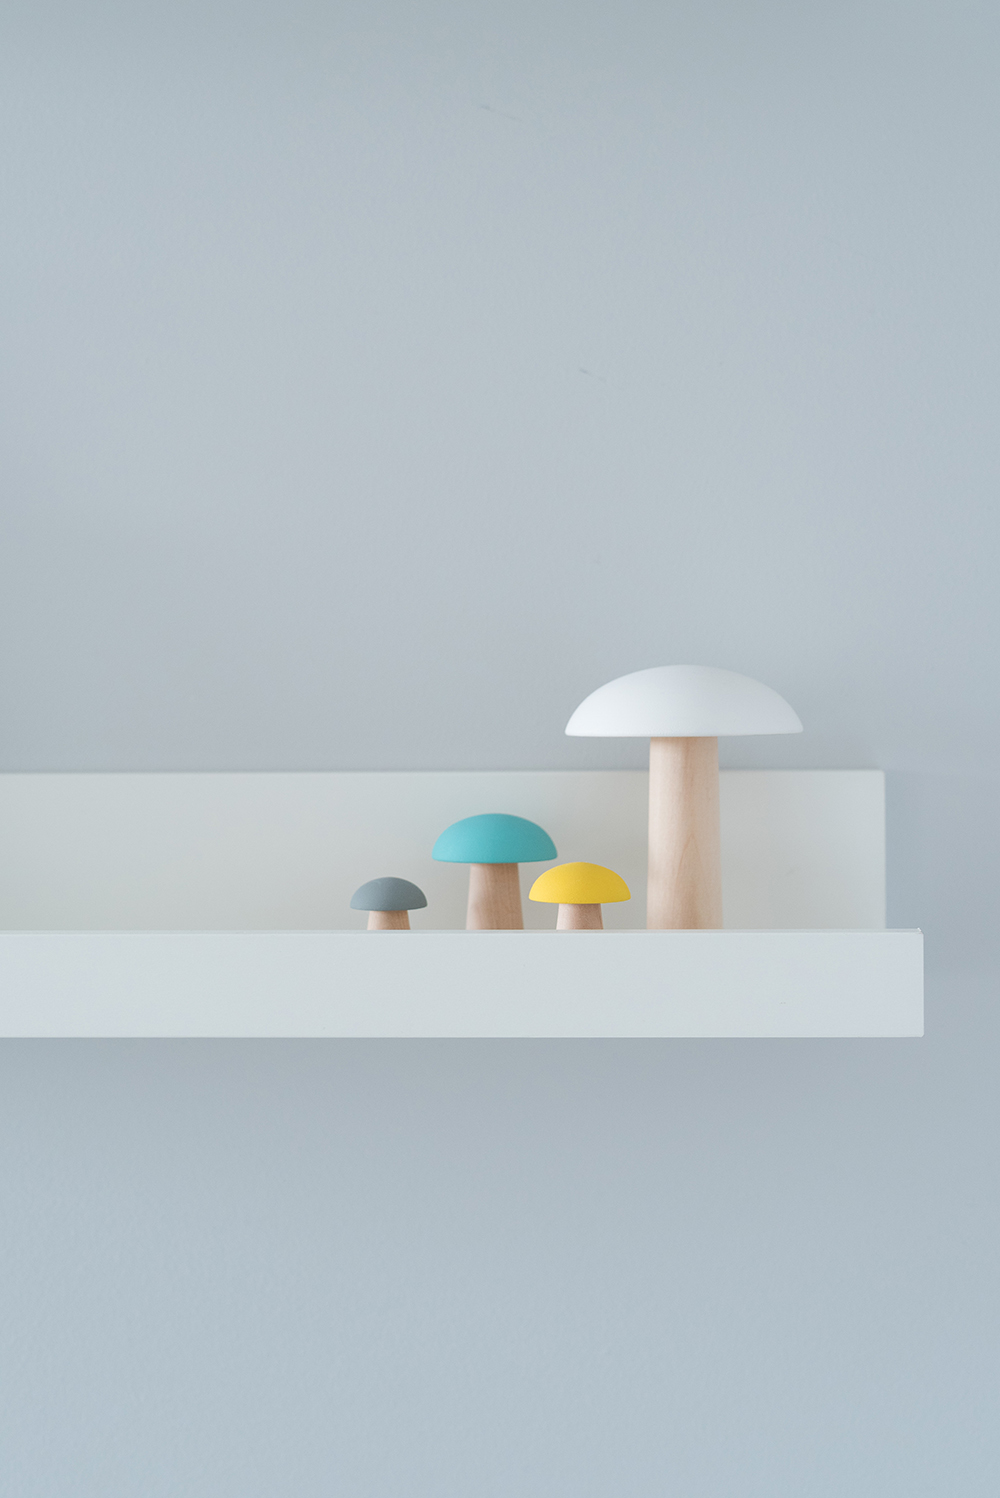 Péa les maisons. Little mushrooms as decorative accessories for baby nursery and kids room